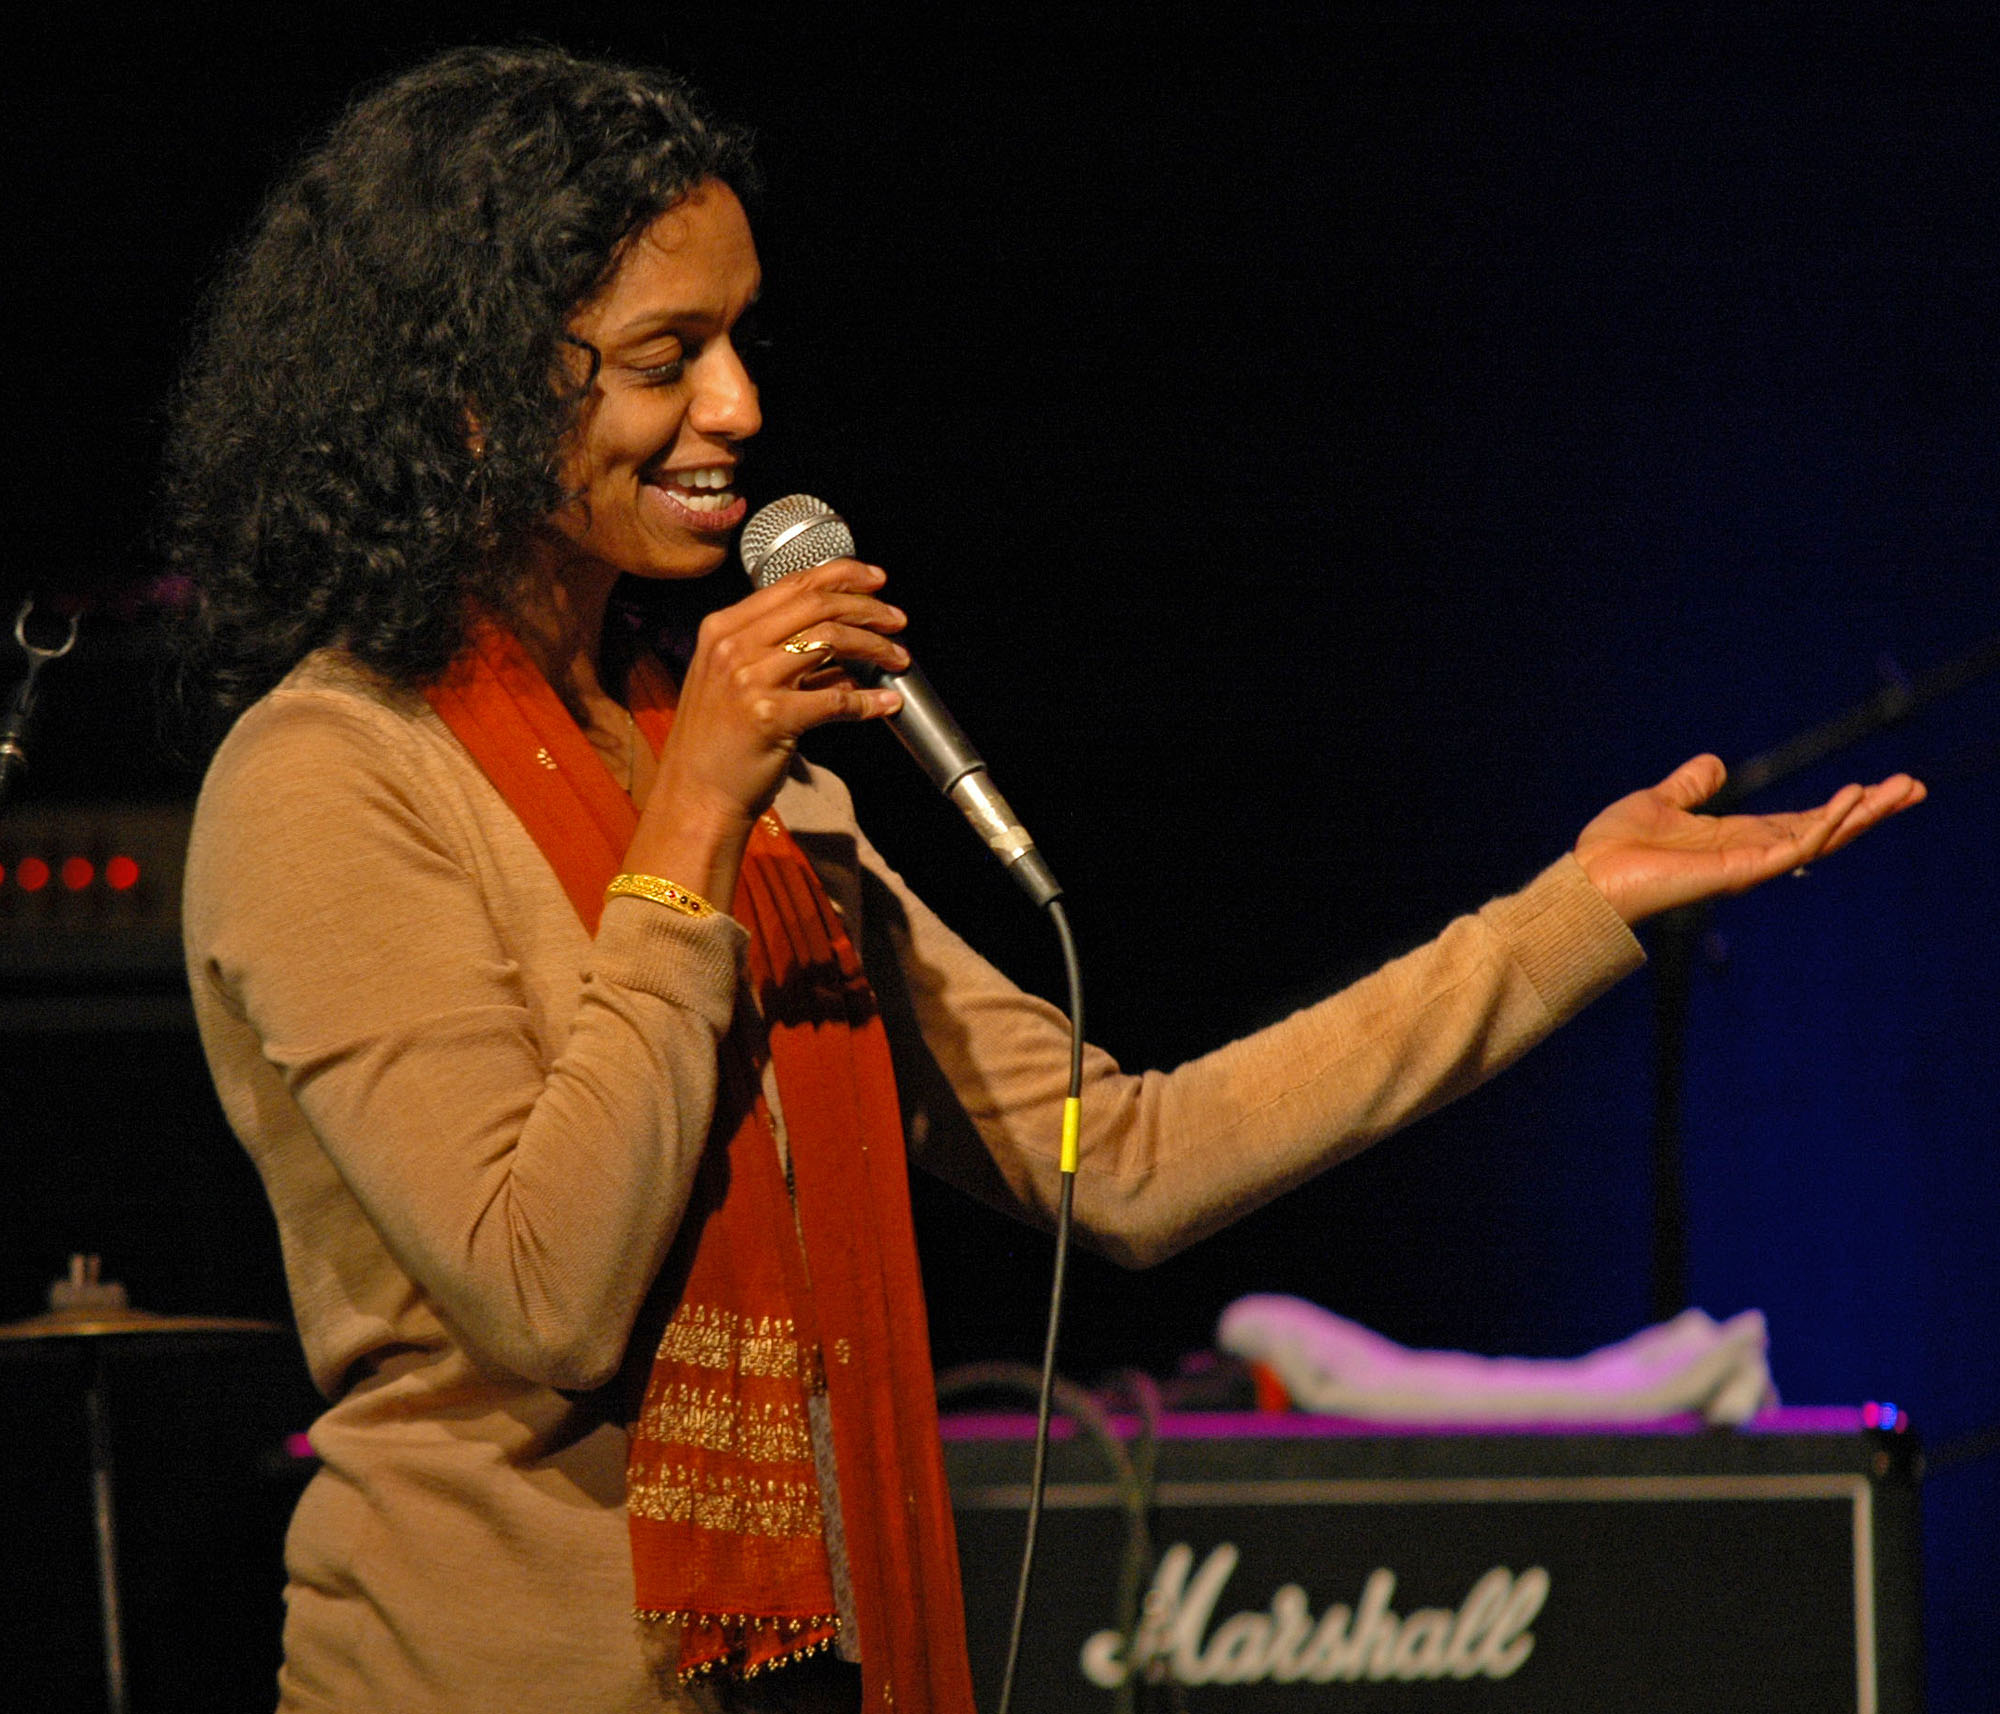 Sumitra Nanjunjdan, Before the John McLaughlin Tribute at the 2010 New Universe Music Festival